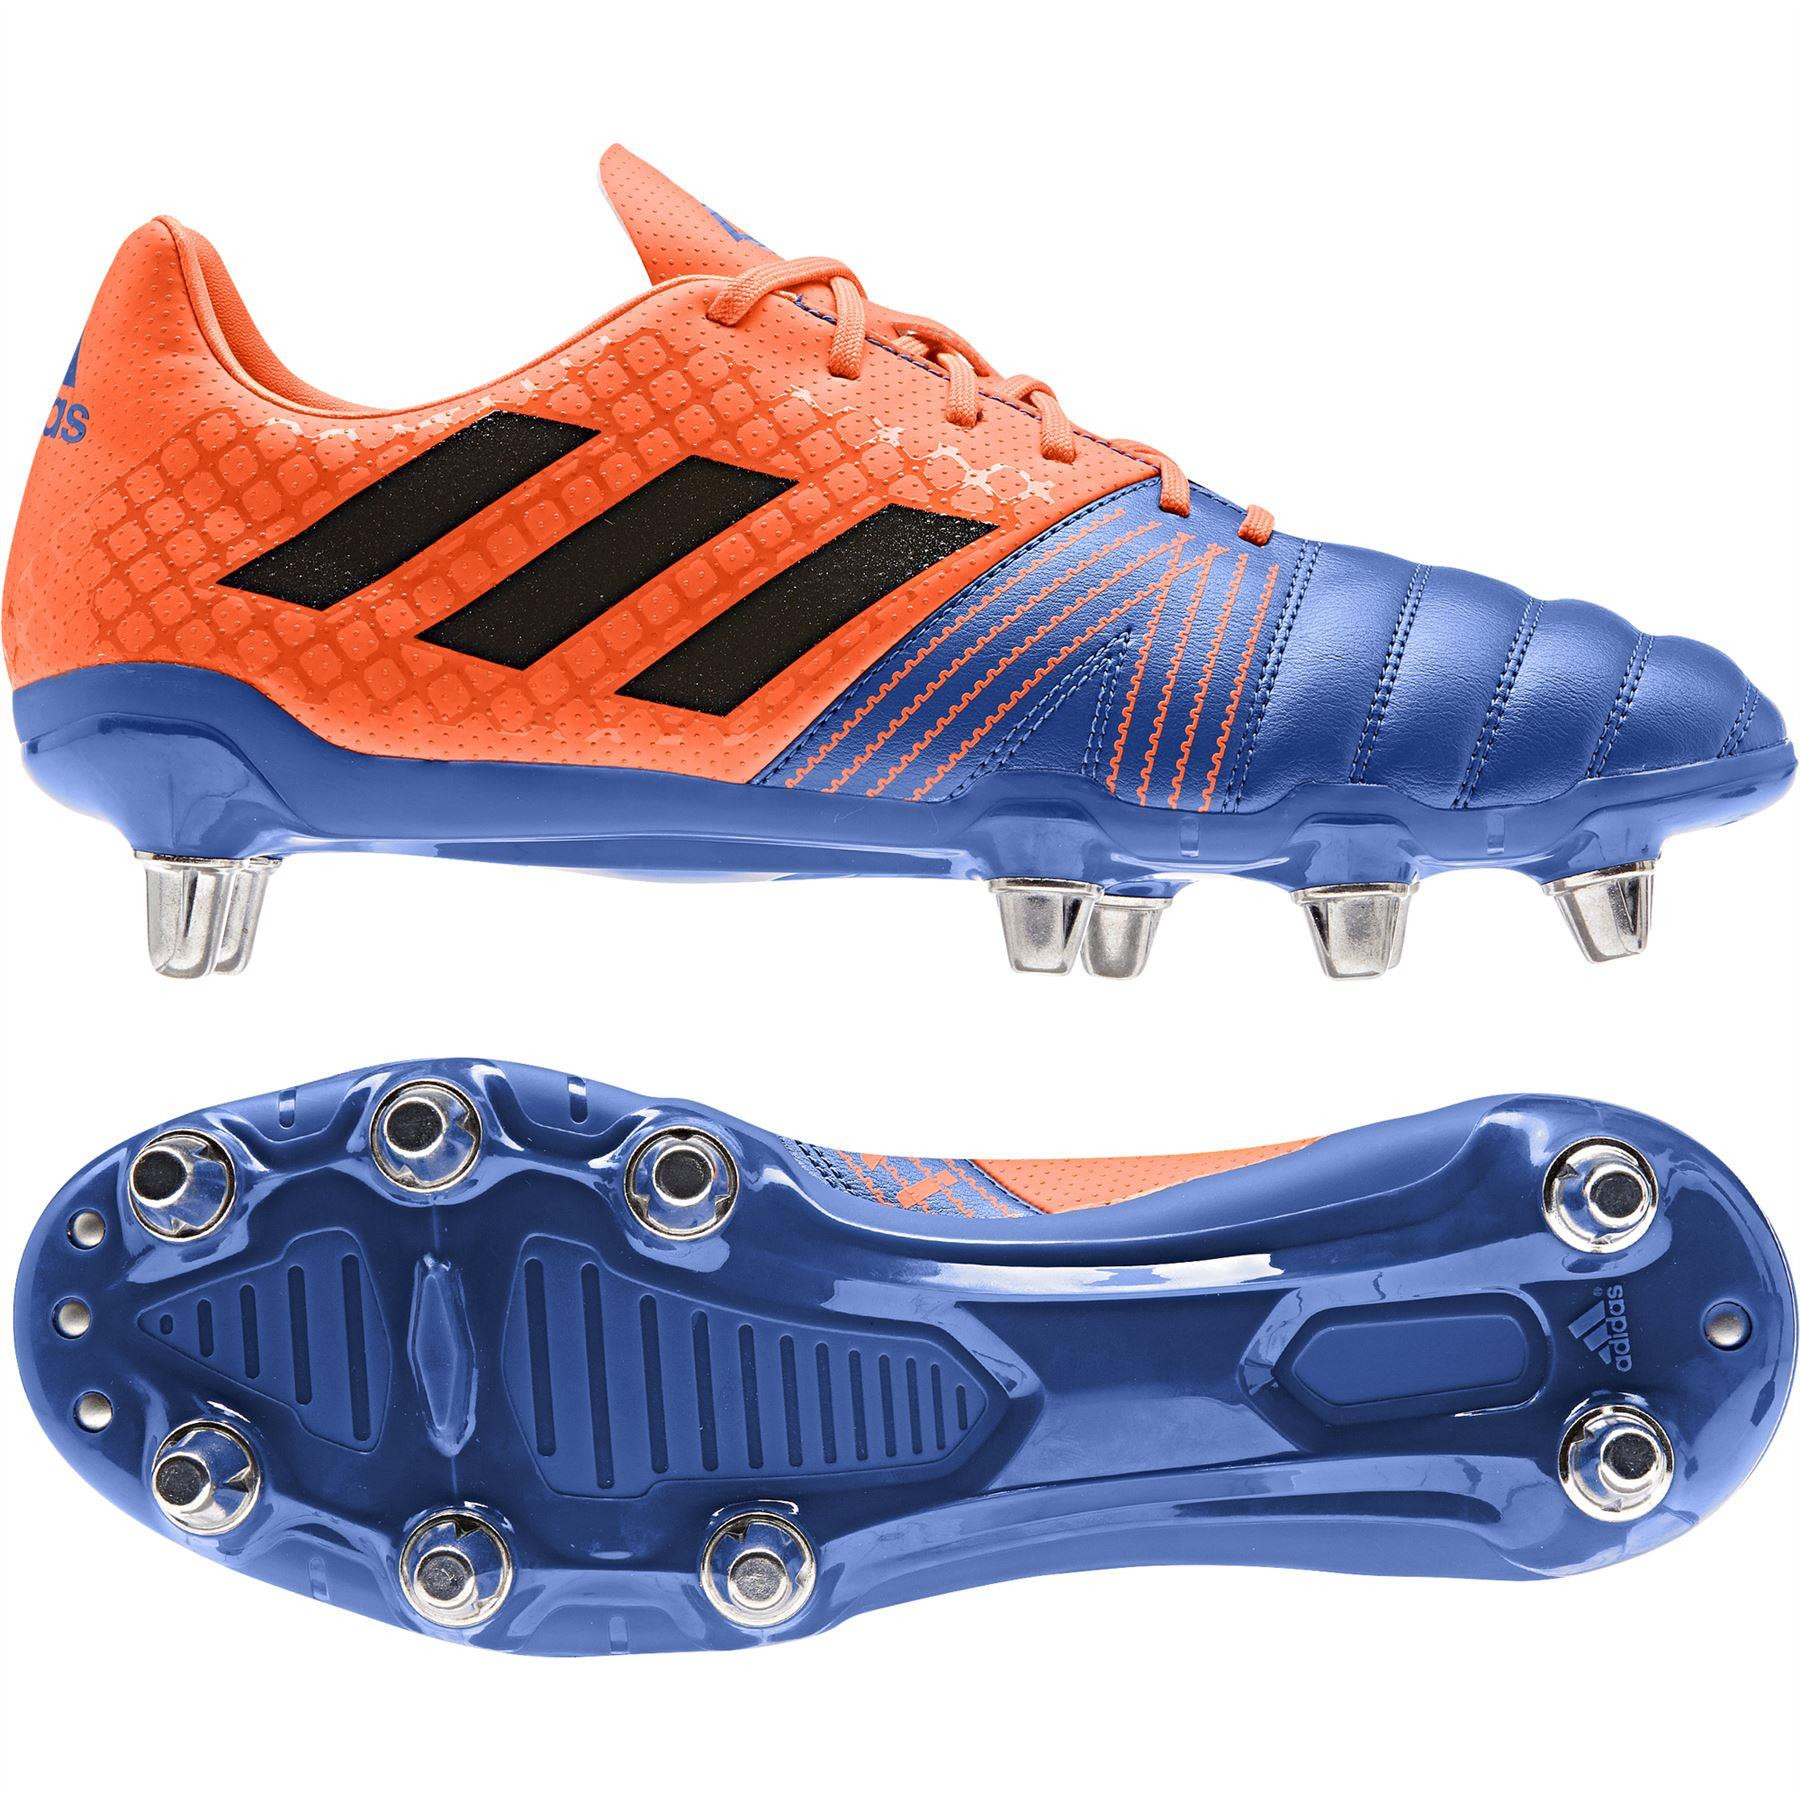 Adidas Kakari SG Rugby Boots Blue/Black/Solar Orange 2019